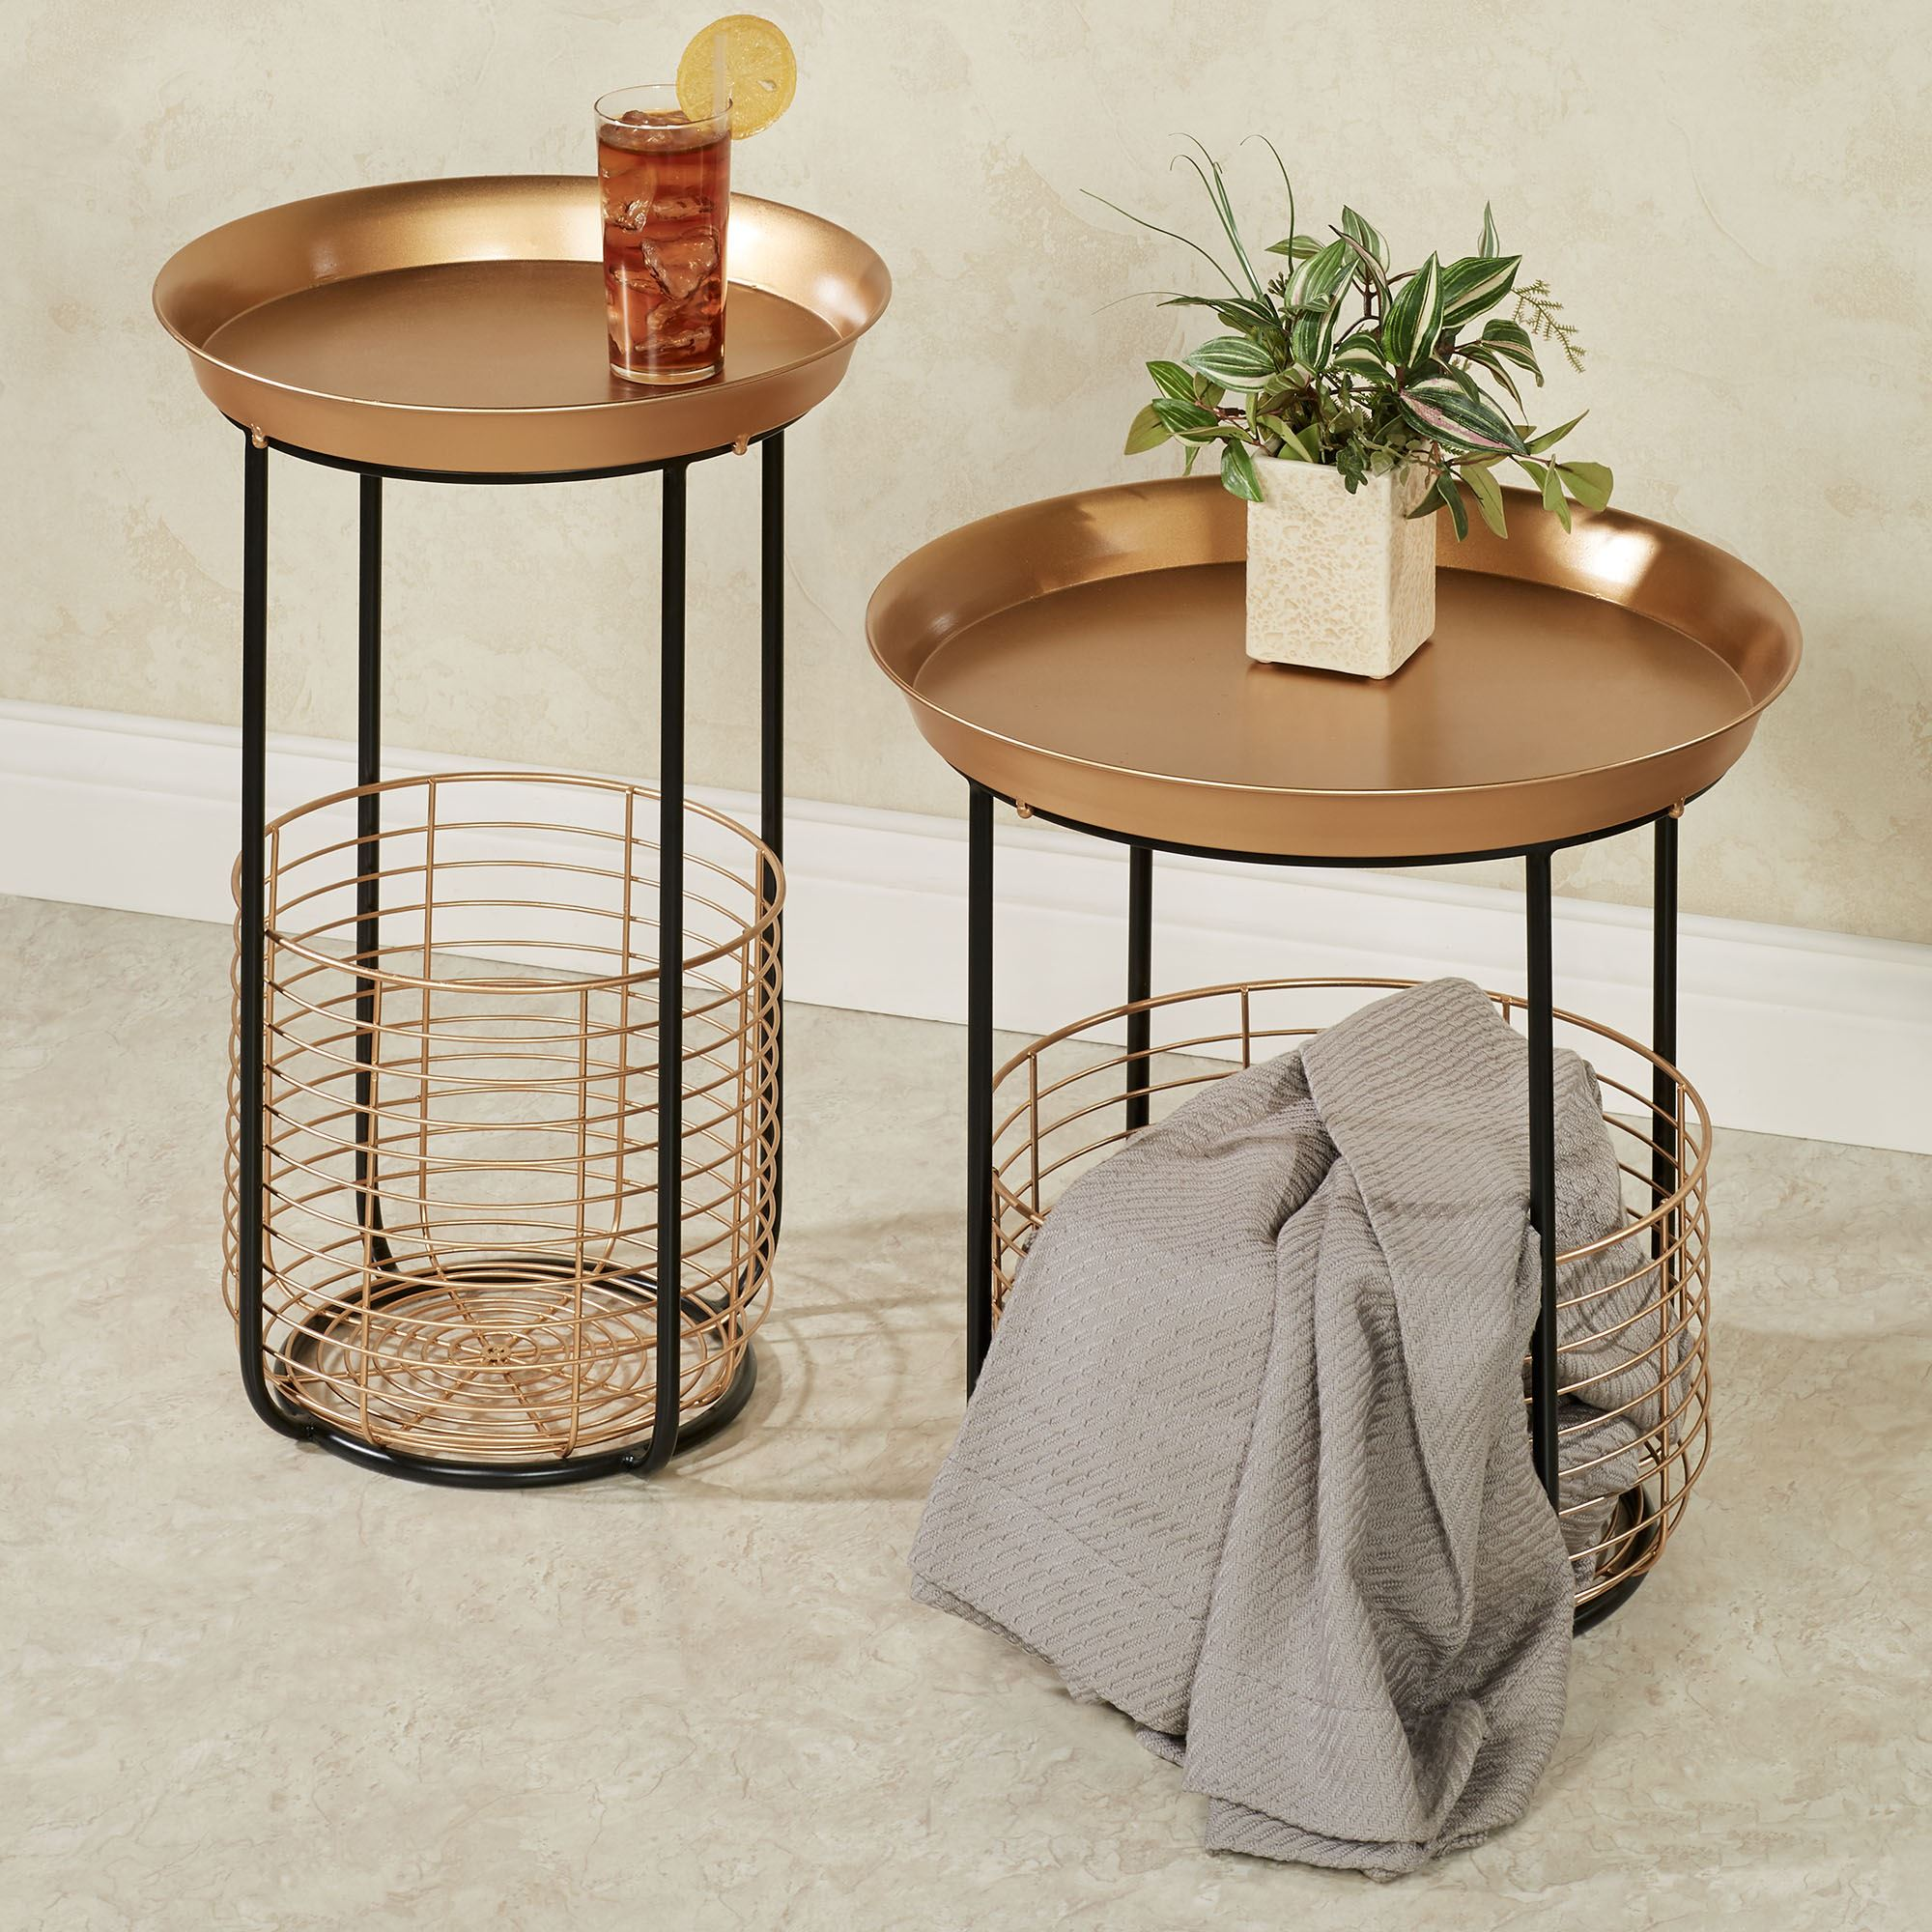 - Macayle Round Metal Accent Tables With Wire Storage Baskets Set